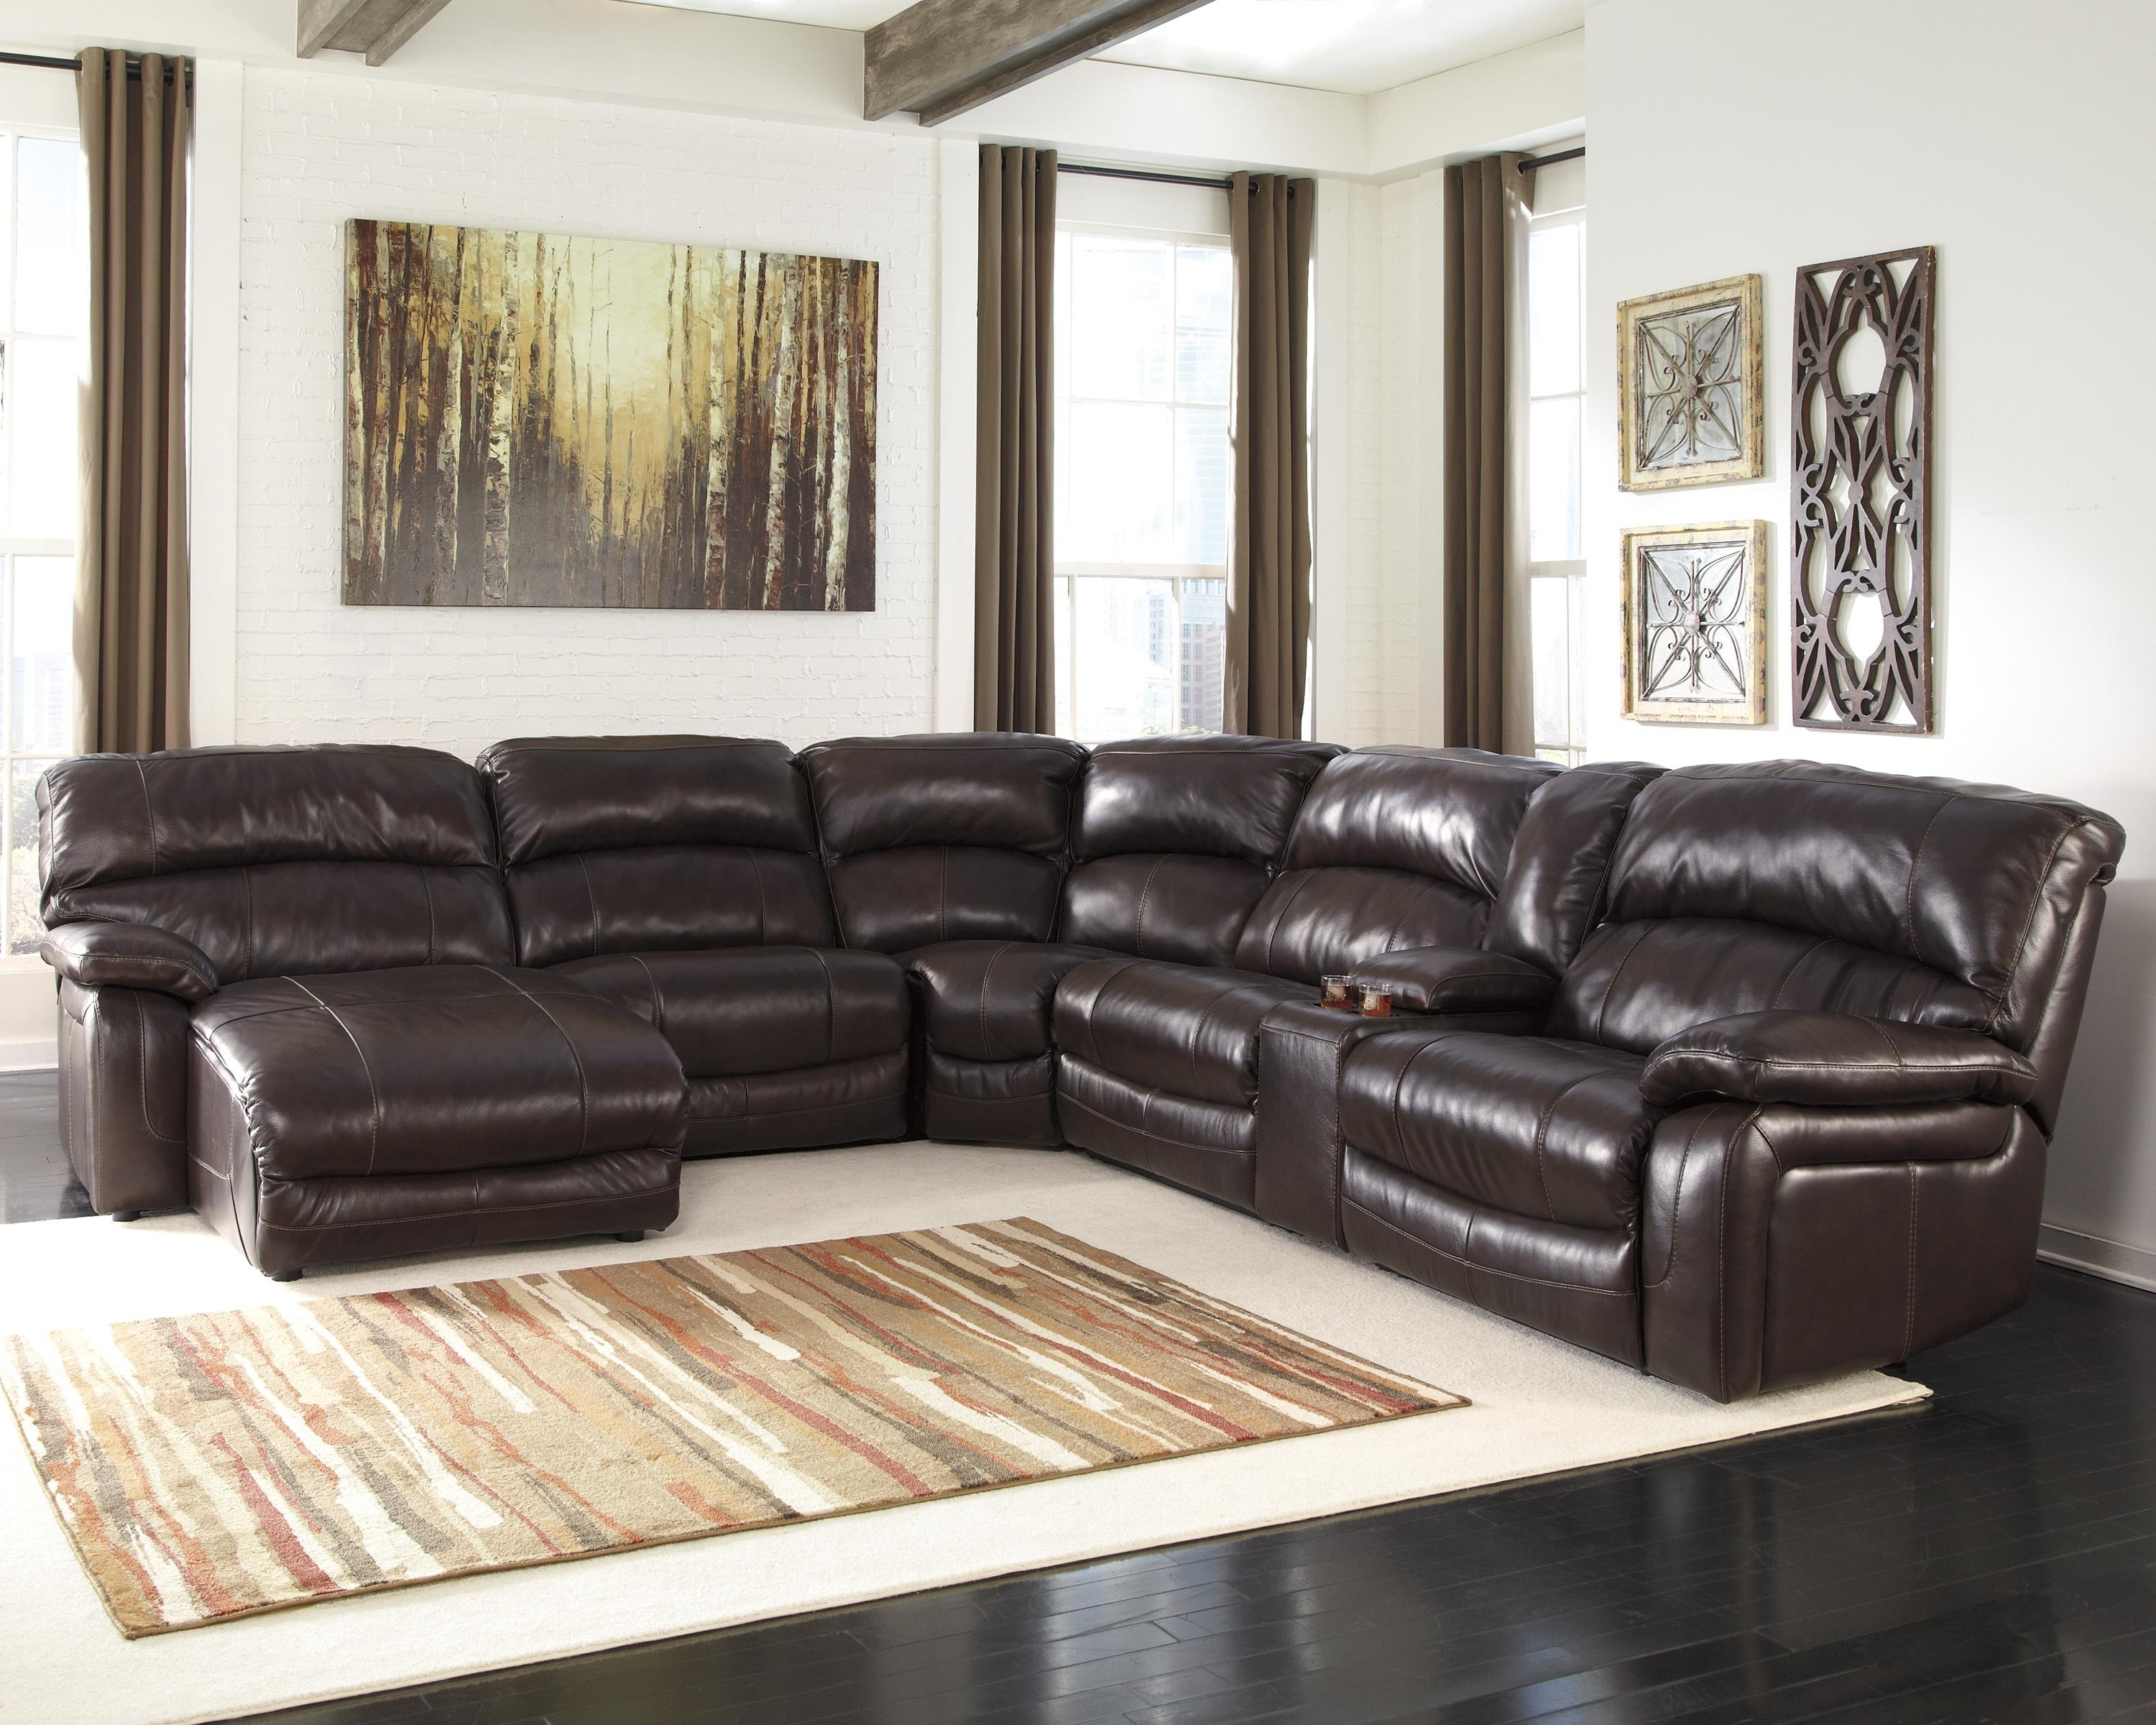 Signature Designashley Damacio – Dark Brown Reclining In 2017 Jackson Tn Sectional Sofas (View 9 of 15)